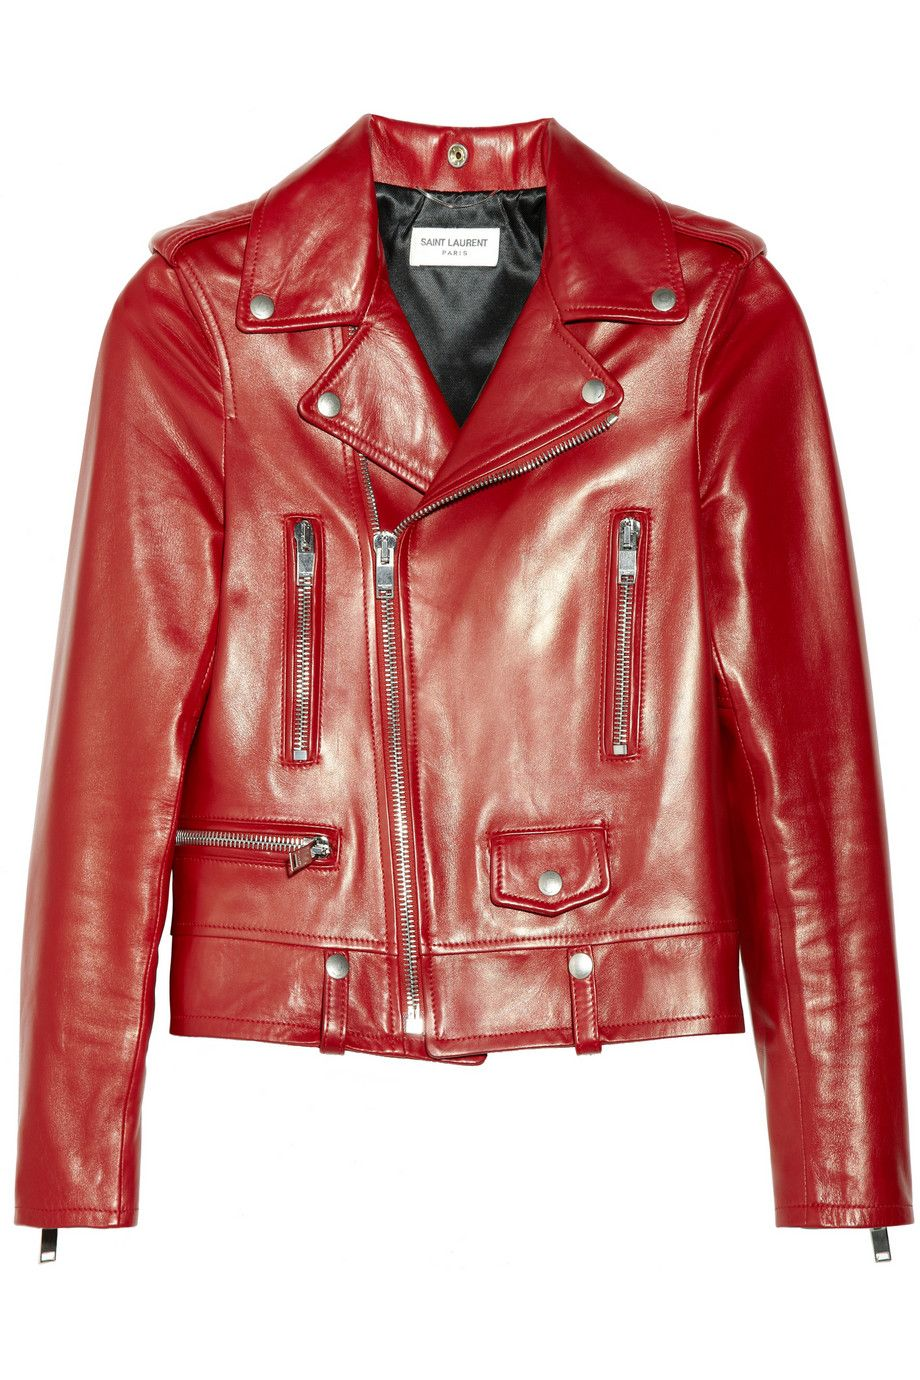 Saint Laurent - Red Leather Biker Jacket - Lyst